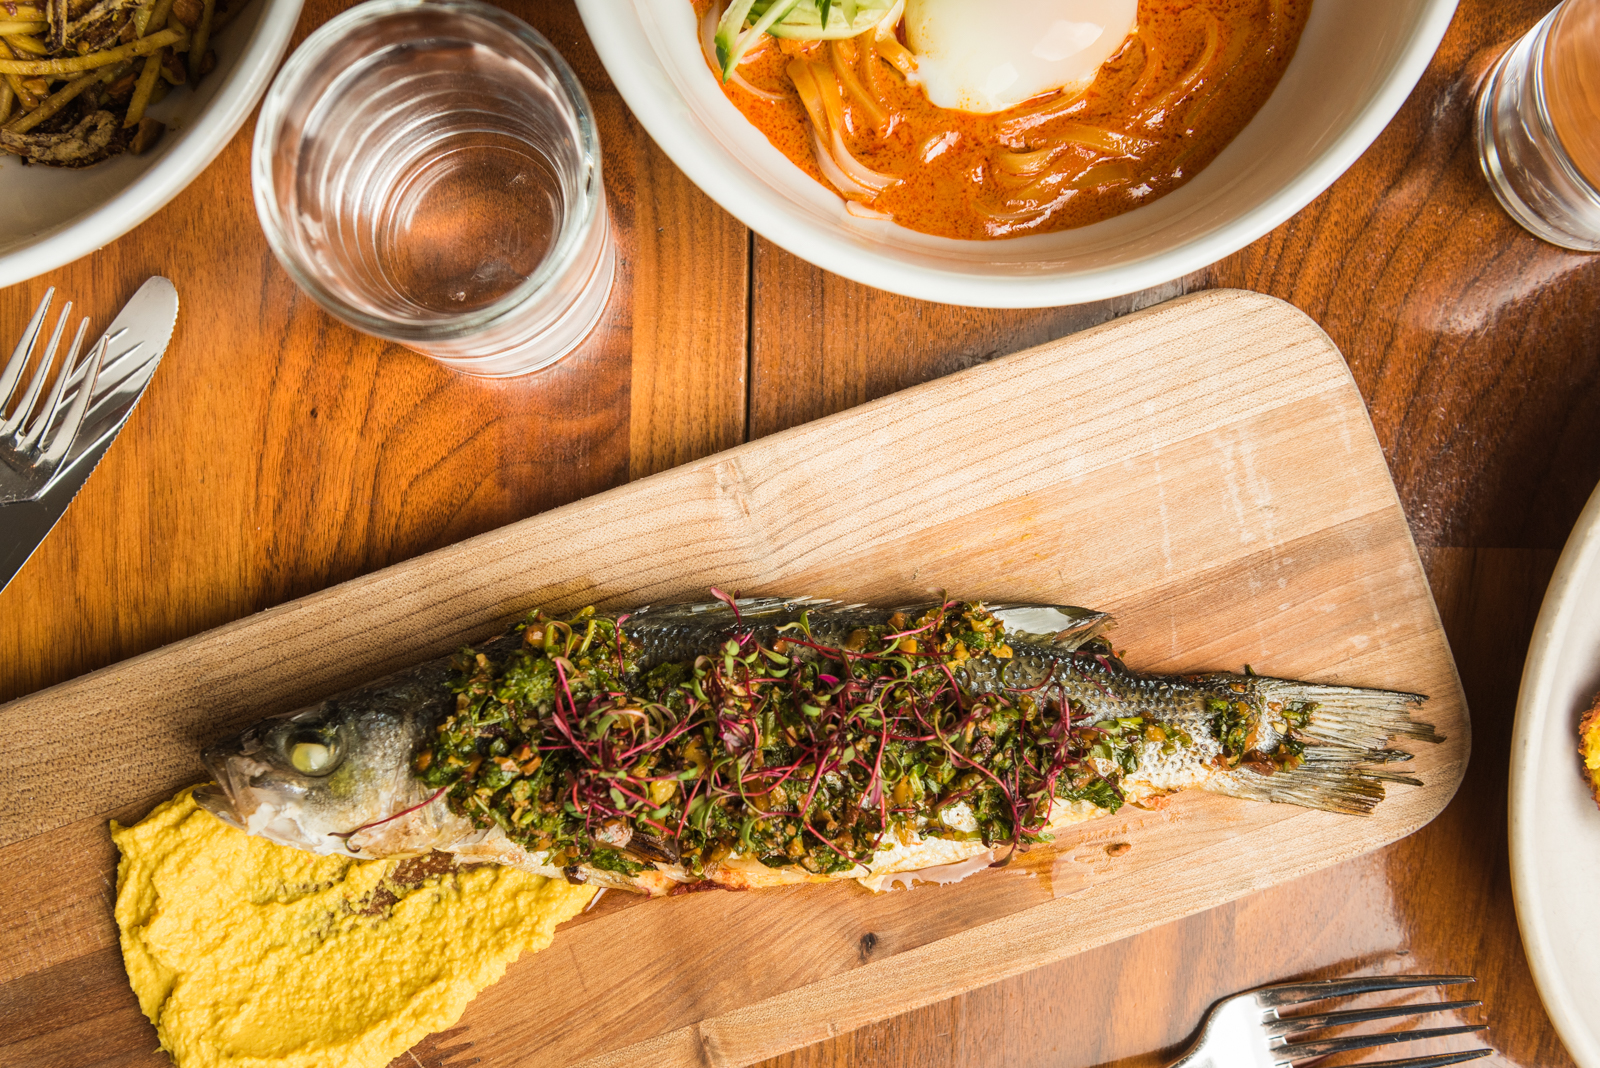 Wood-Fire Roasted Whole Branzino with sambal marinade, turmeric cauliflower puree and pistachio sambal.